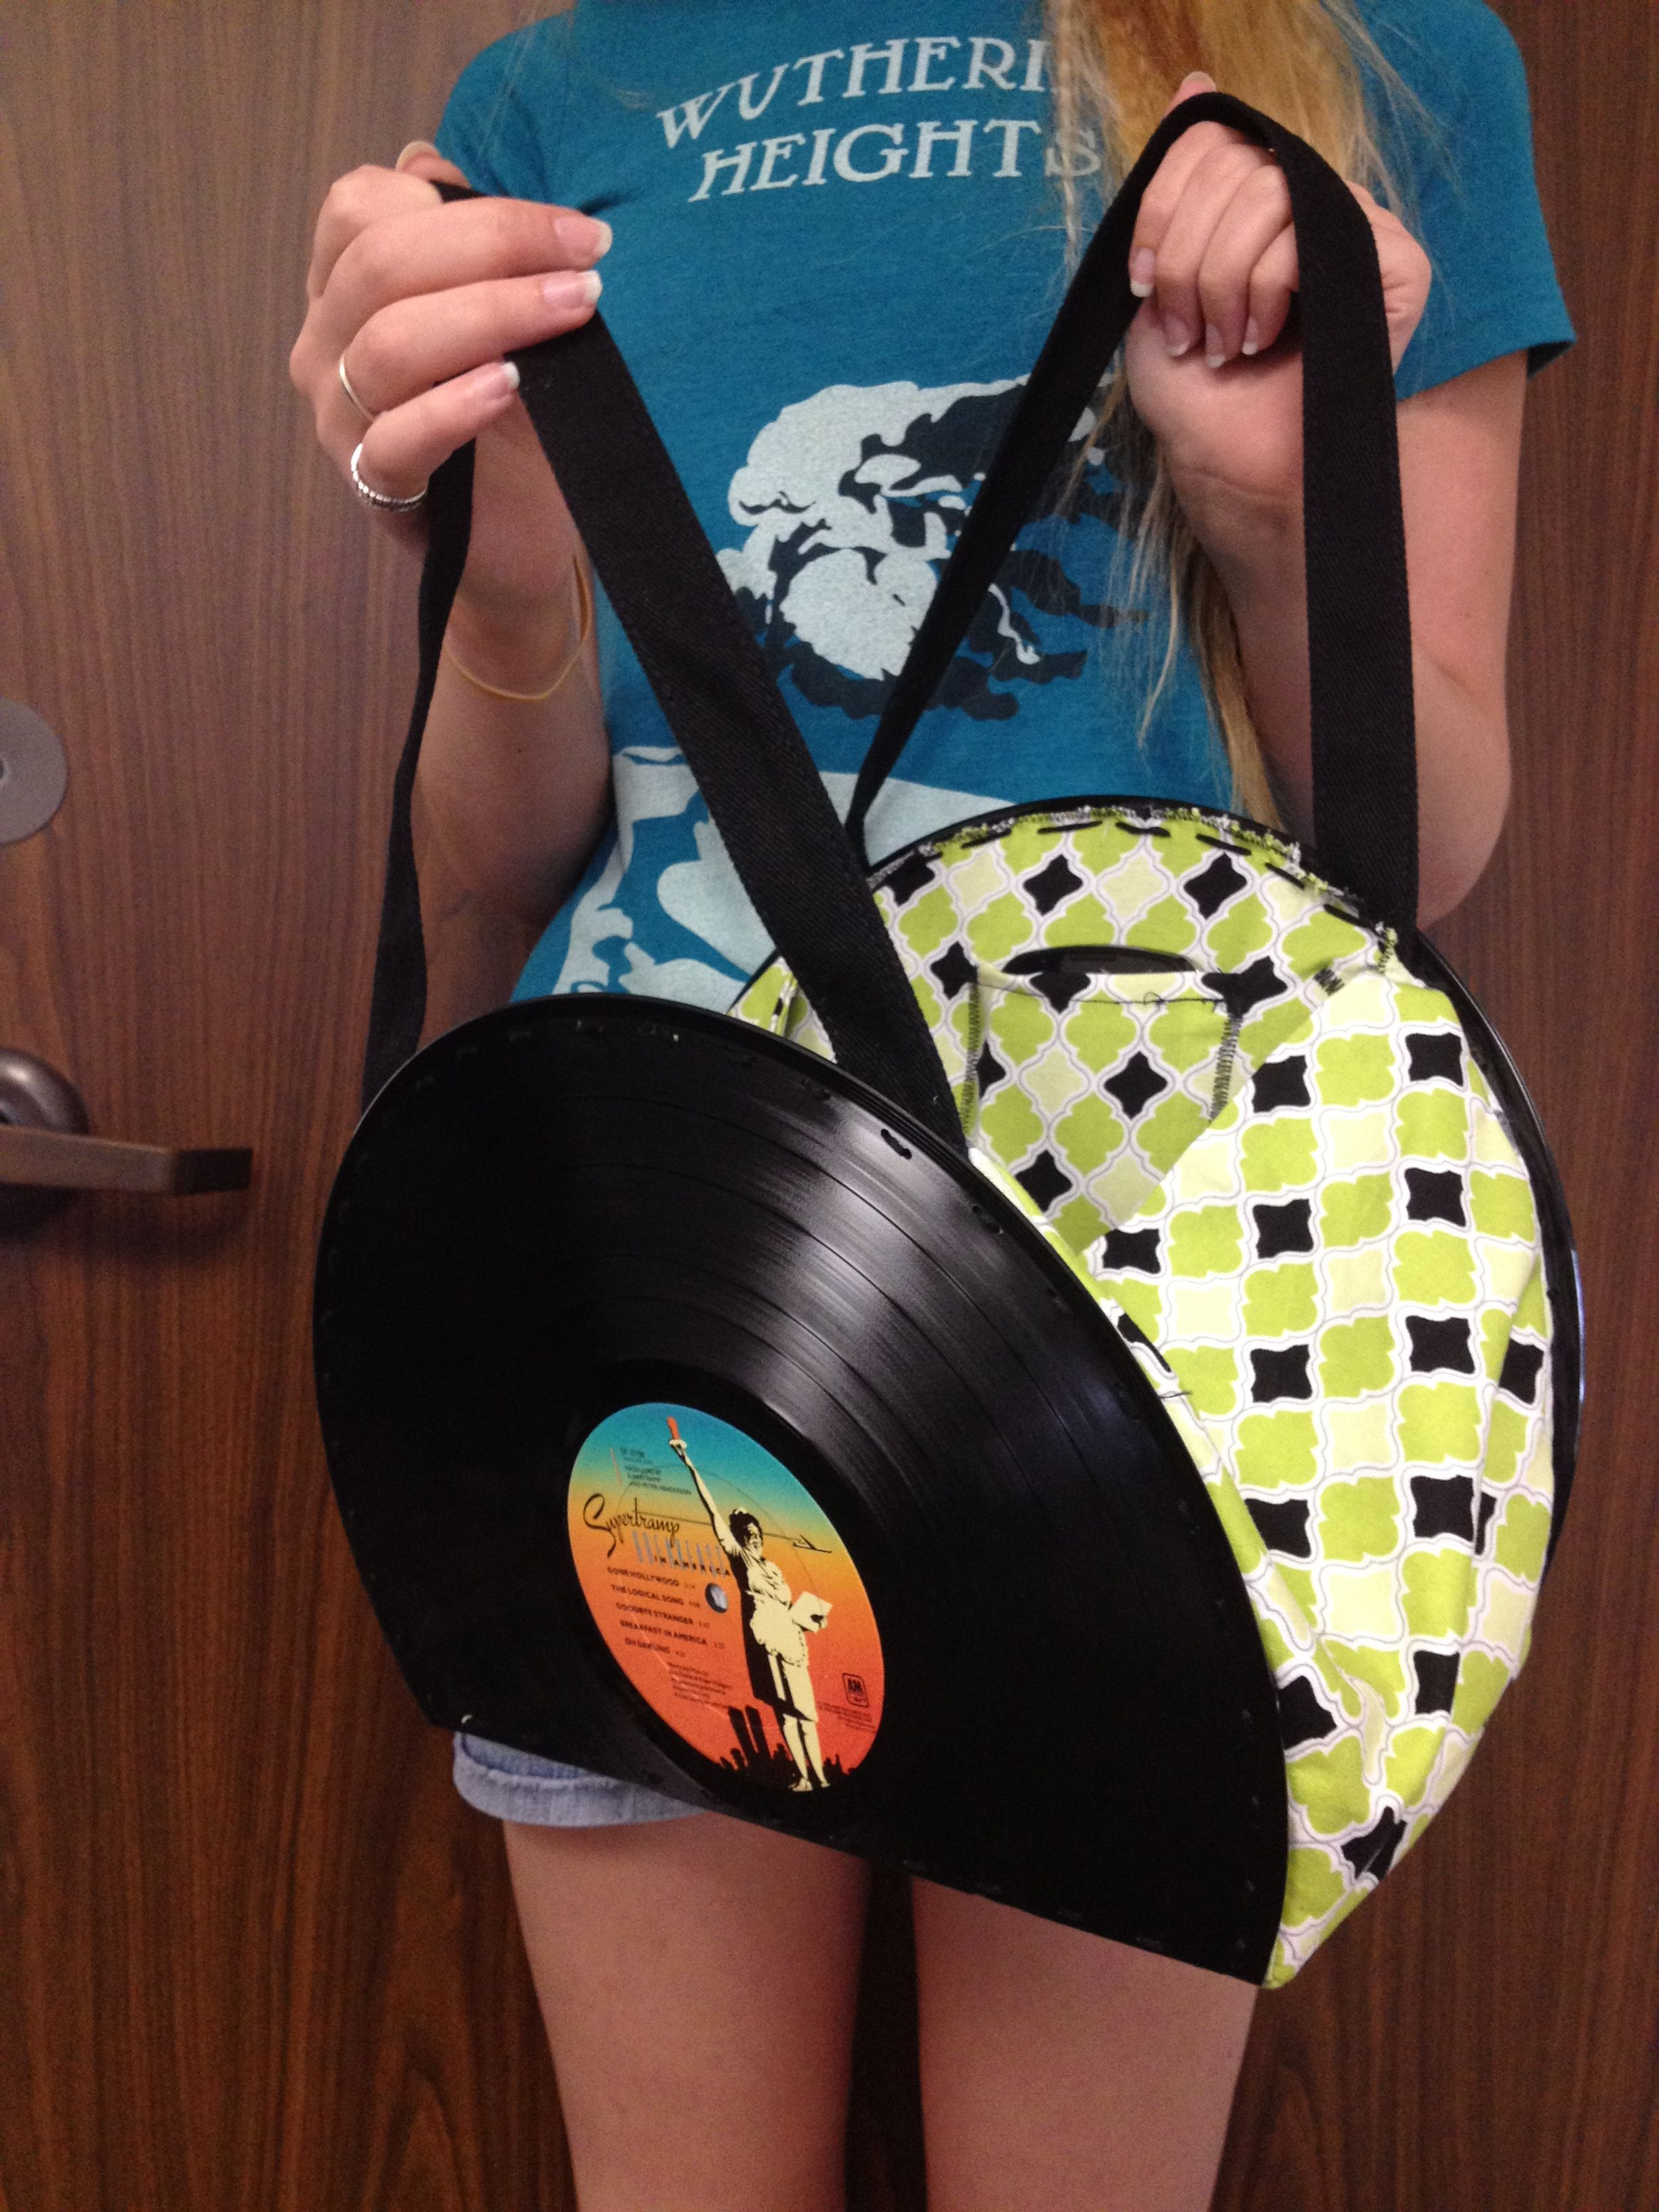 Vinyl Record Book Cover Diy : Record purse crafts i have made pinterest art